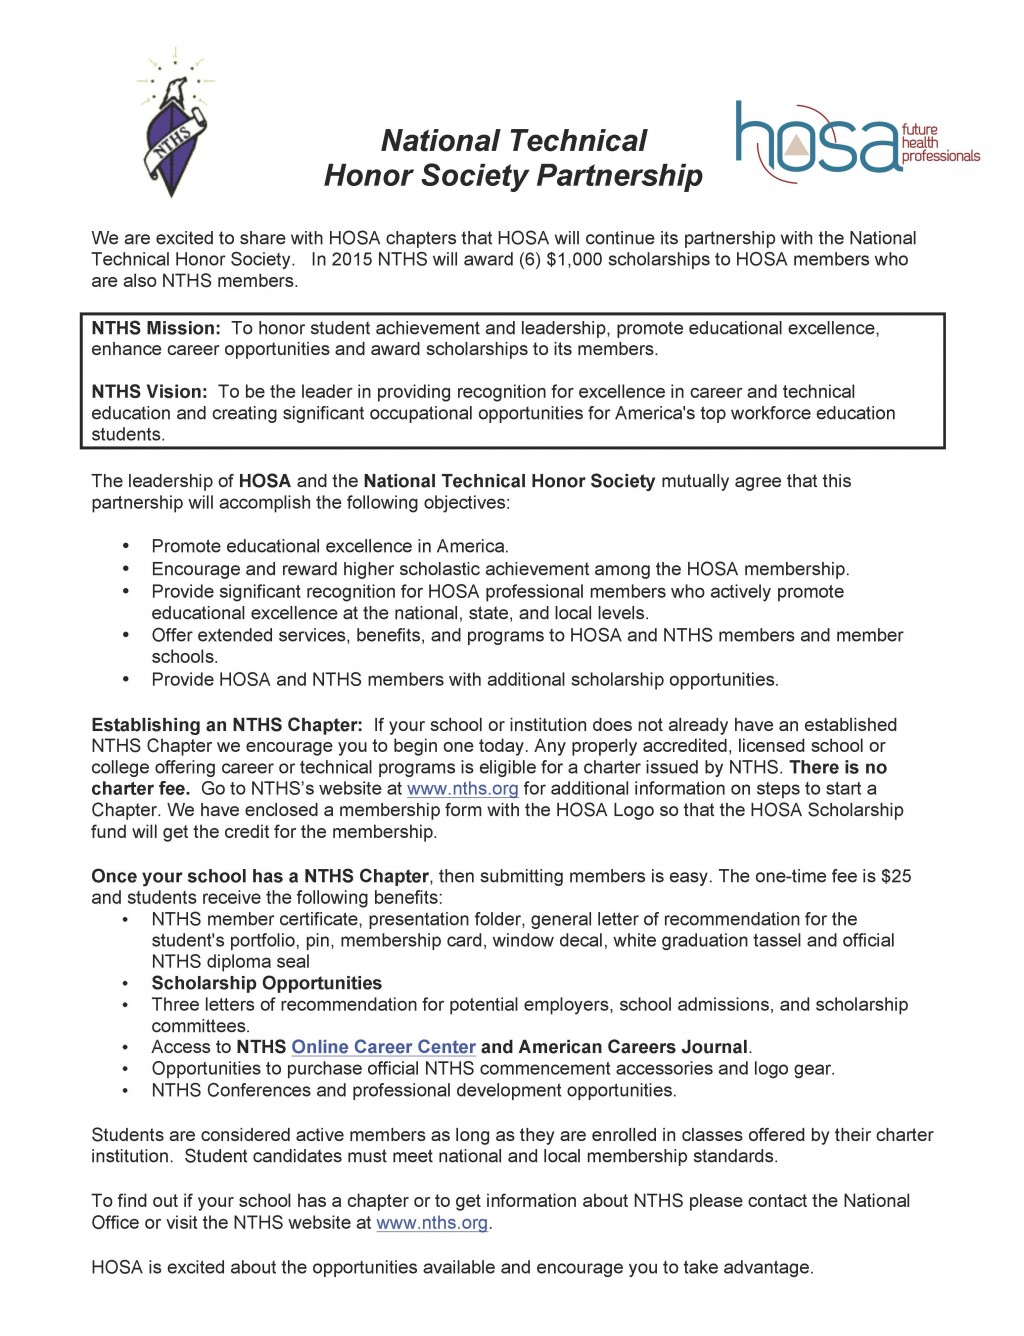 009 National Honor Society Essay Cover Letter Juniors Nths P Topics Samples Unusual Junior Large